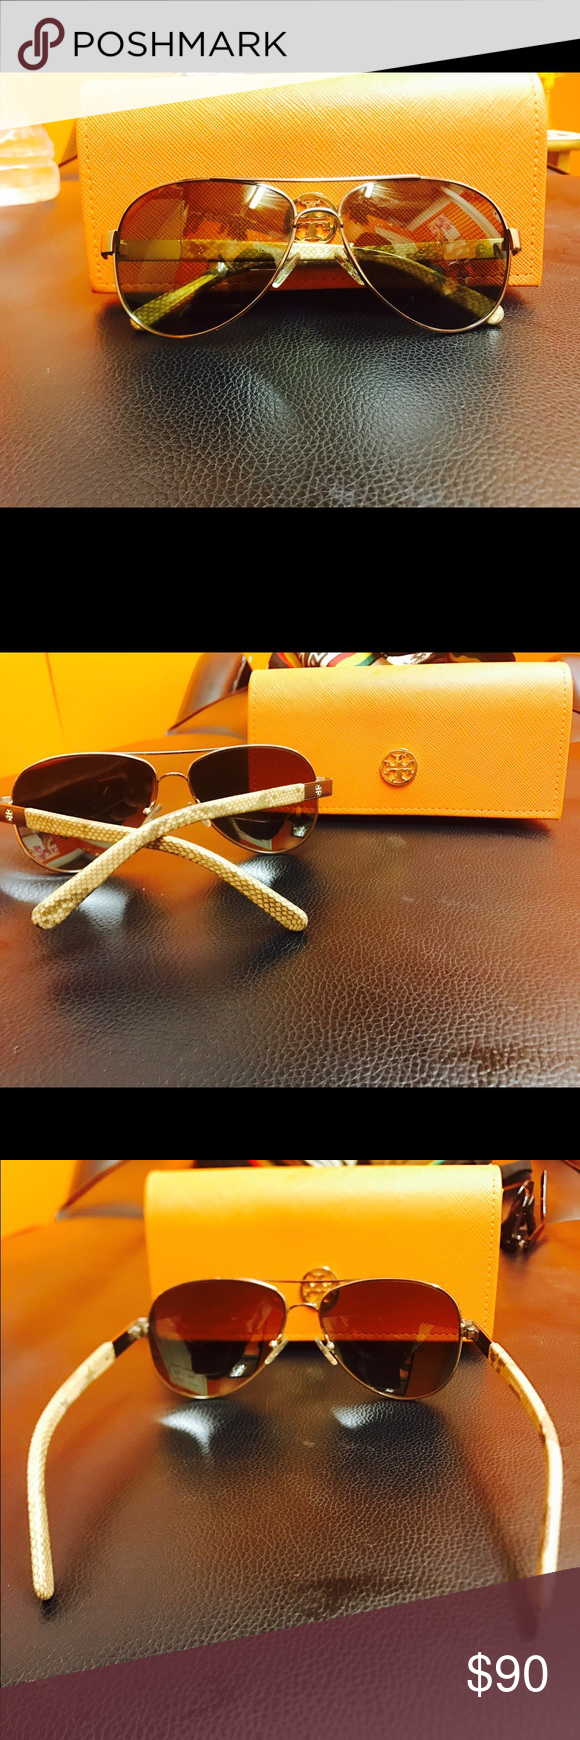 Tory burch sunglasss This are gorgeous sunglasses they are polarized has a beautiful snake print they come with the box I had it for a year there a little stretch from the ears part but. Not so noticeable make me an offer Tory Burch Other